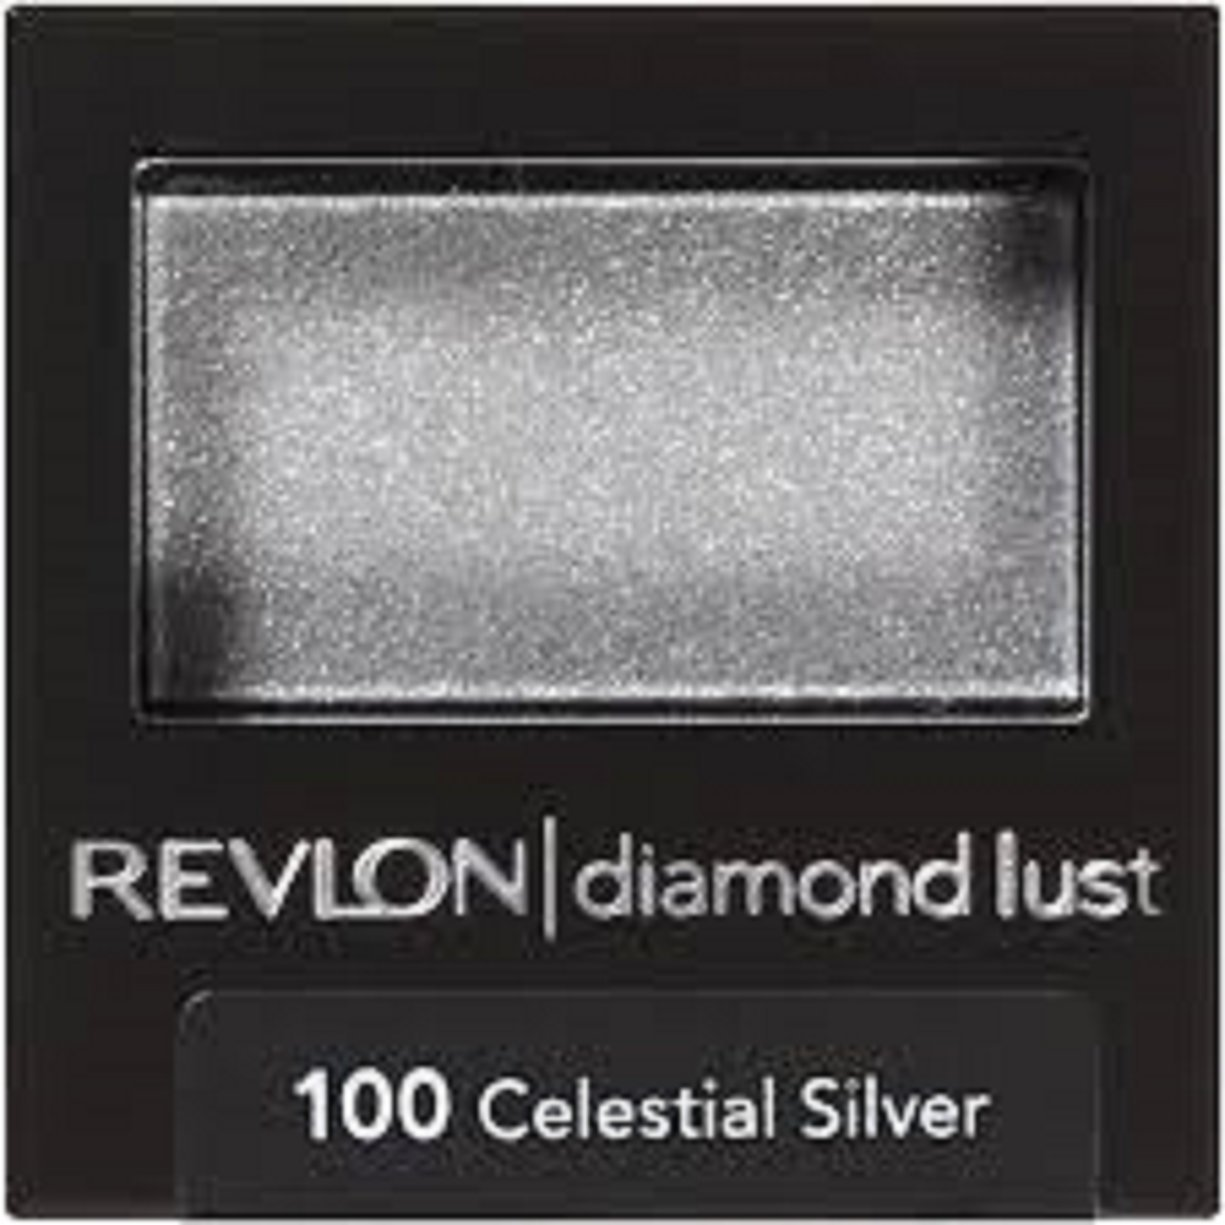 REVLON Luxurious Color Diamond Luste Eye Shadow, 100 Celestial Silver, 0.028 Oz, Pack of 10. by Revlon (Image #1)